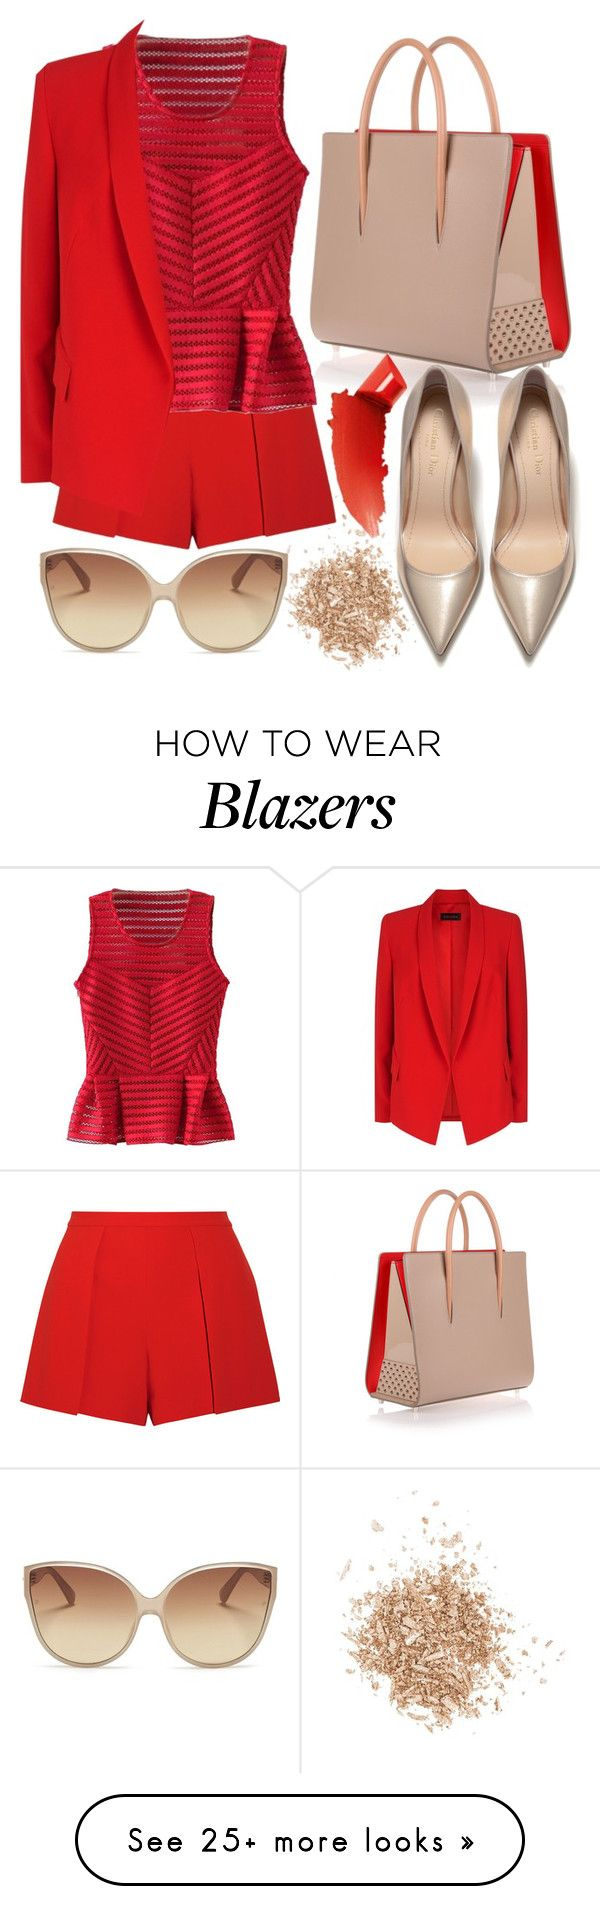 """""""Red peplum blouse"""" by yutsu on Polyvore featuring Topshop, Alice + Olivia, WithChic, Christian Louboutin, ESCADA, Linda Farrow and By Terry"""